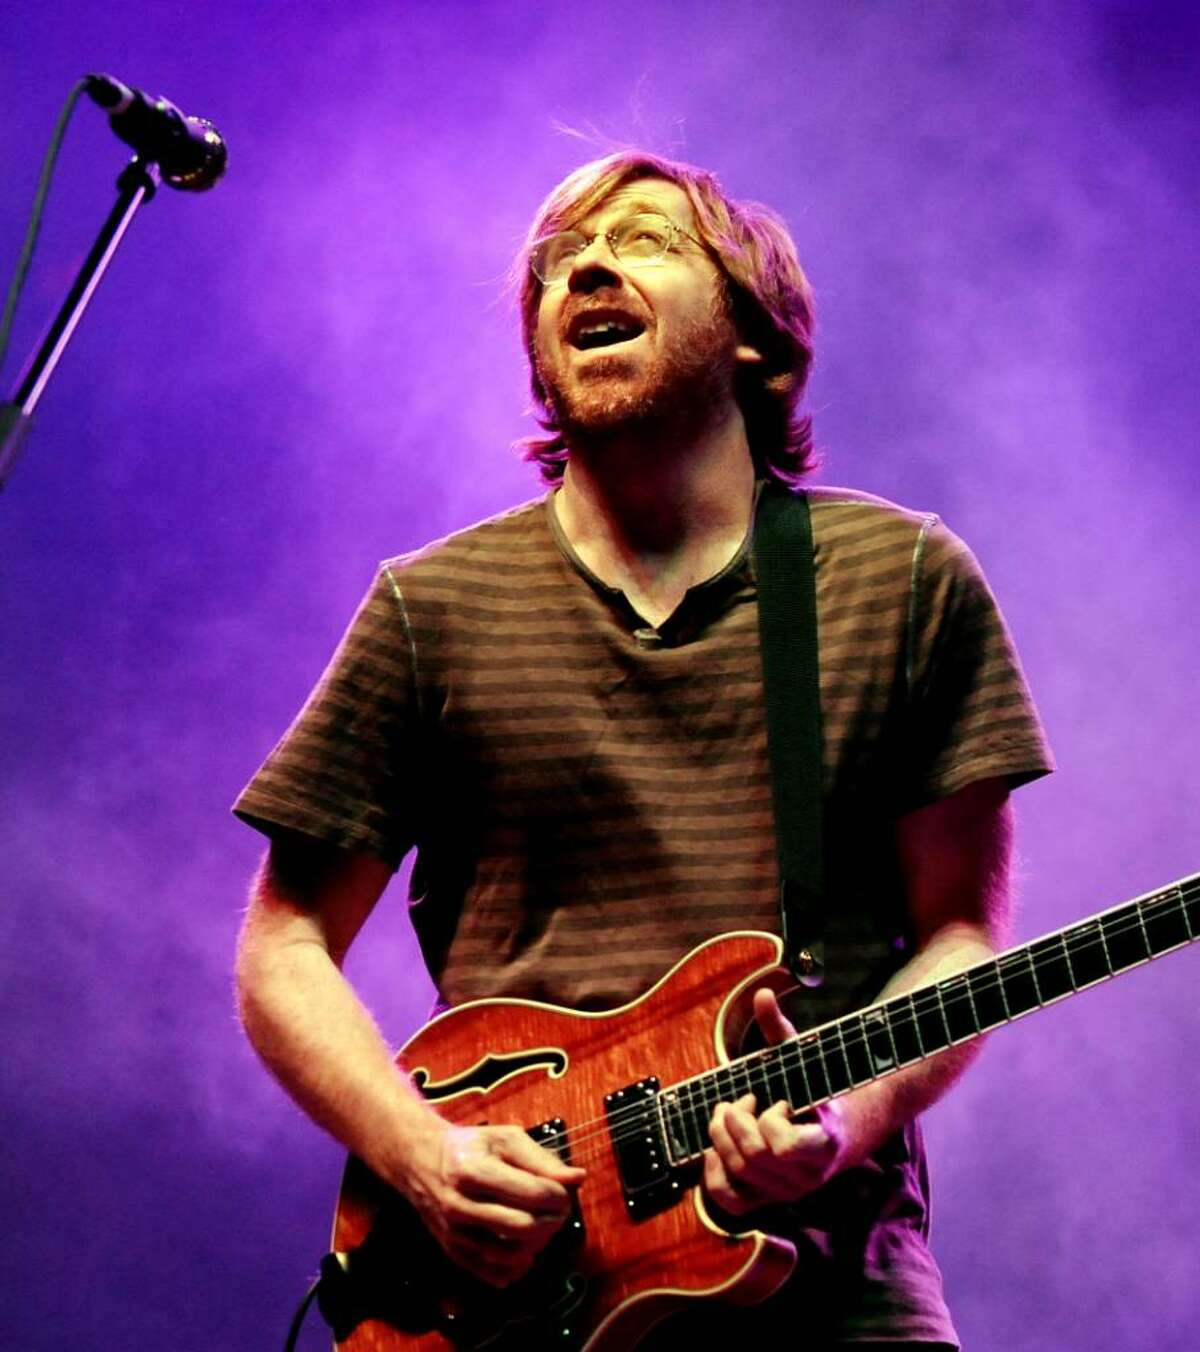 Trey Anastasio performs with Phish Friday night at the Times Union Center in Albany. The band performs again Saturday night. (Cindy Schultz / Times Union)